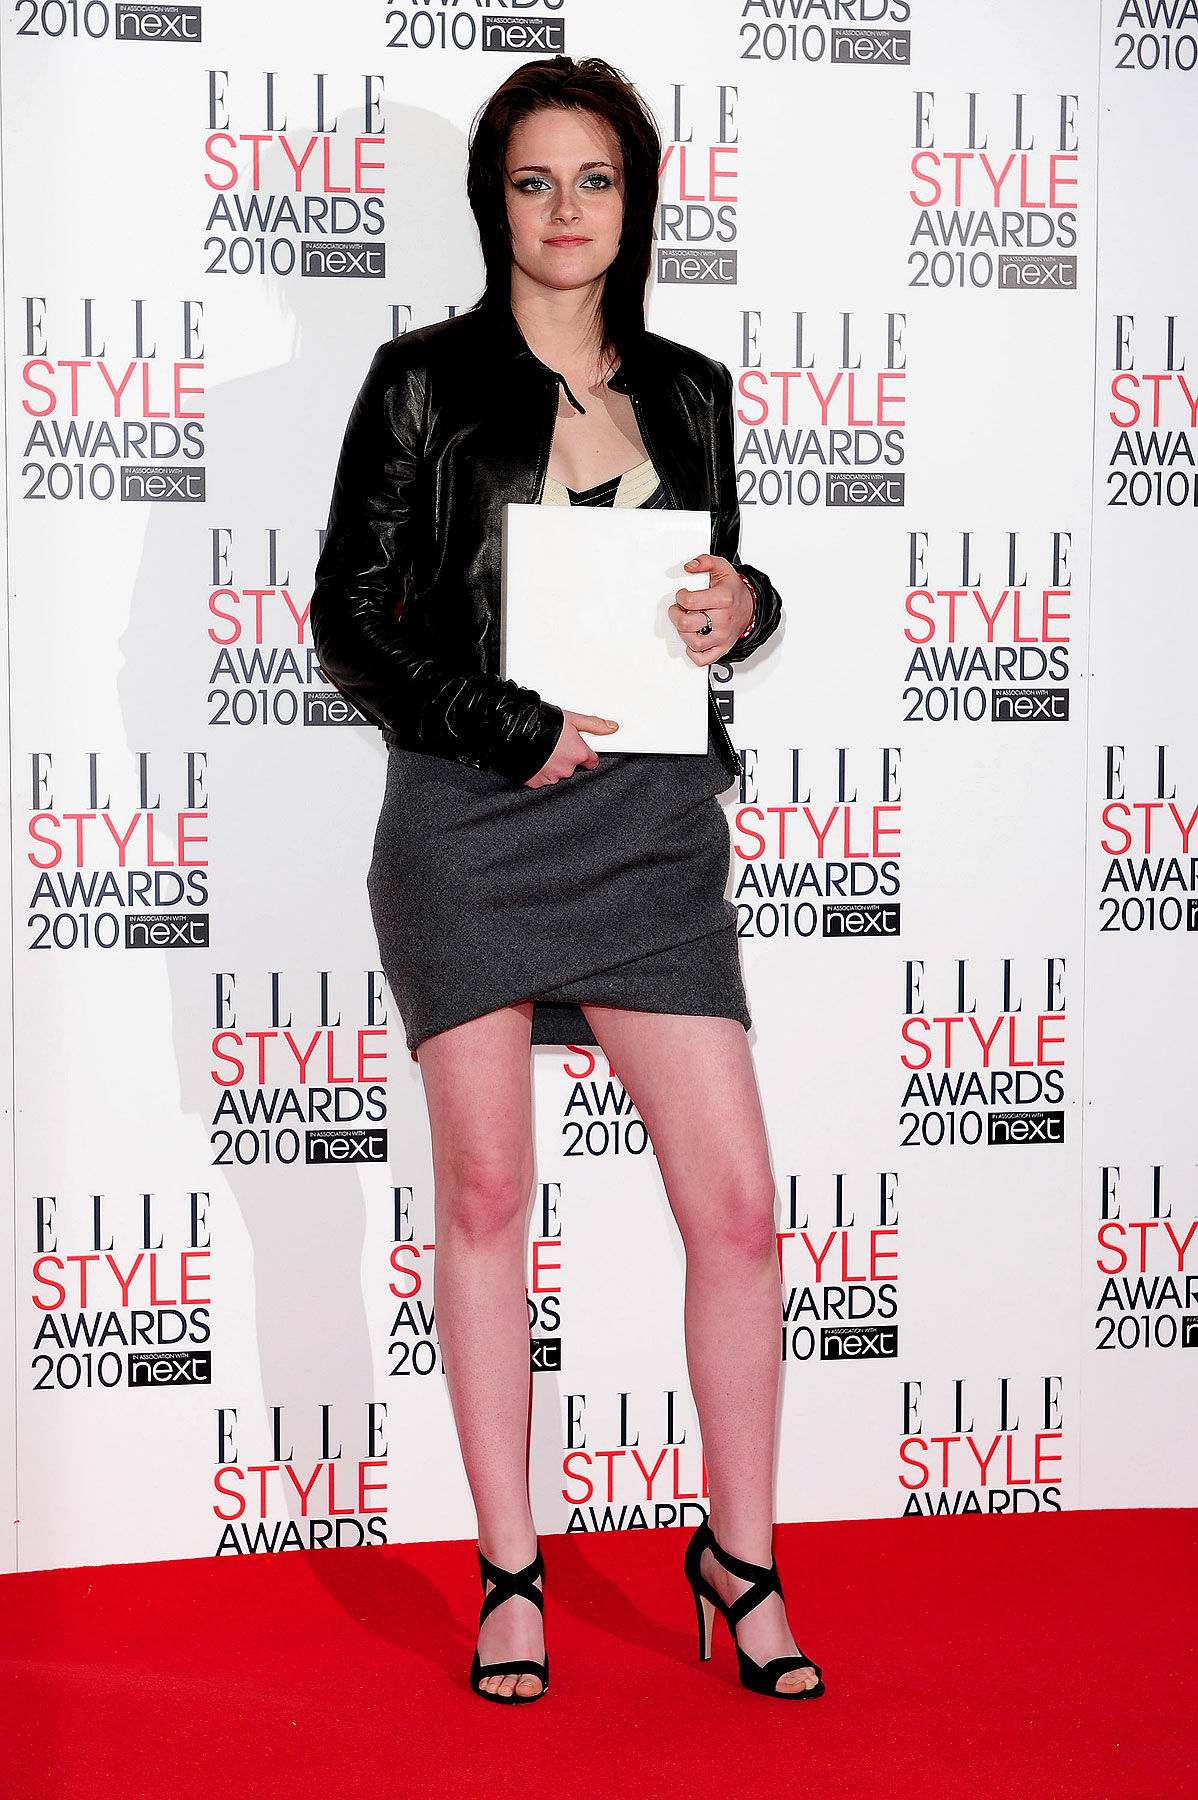 The Elle Style Awards Red Carpet (PHOTOS)